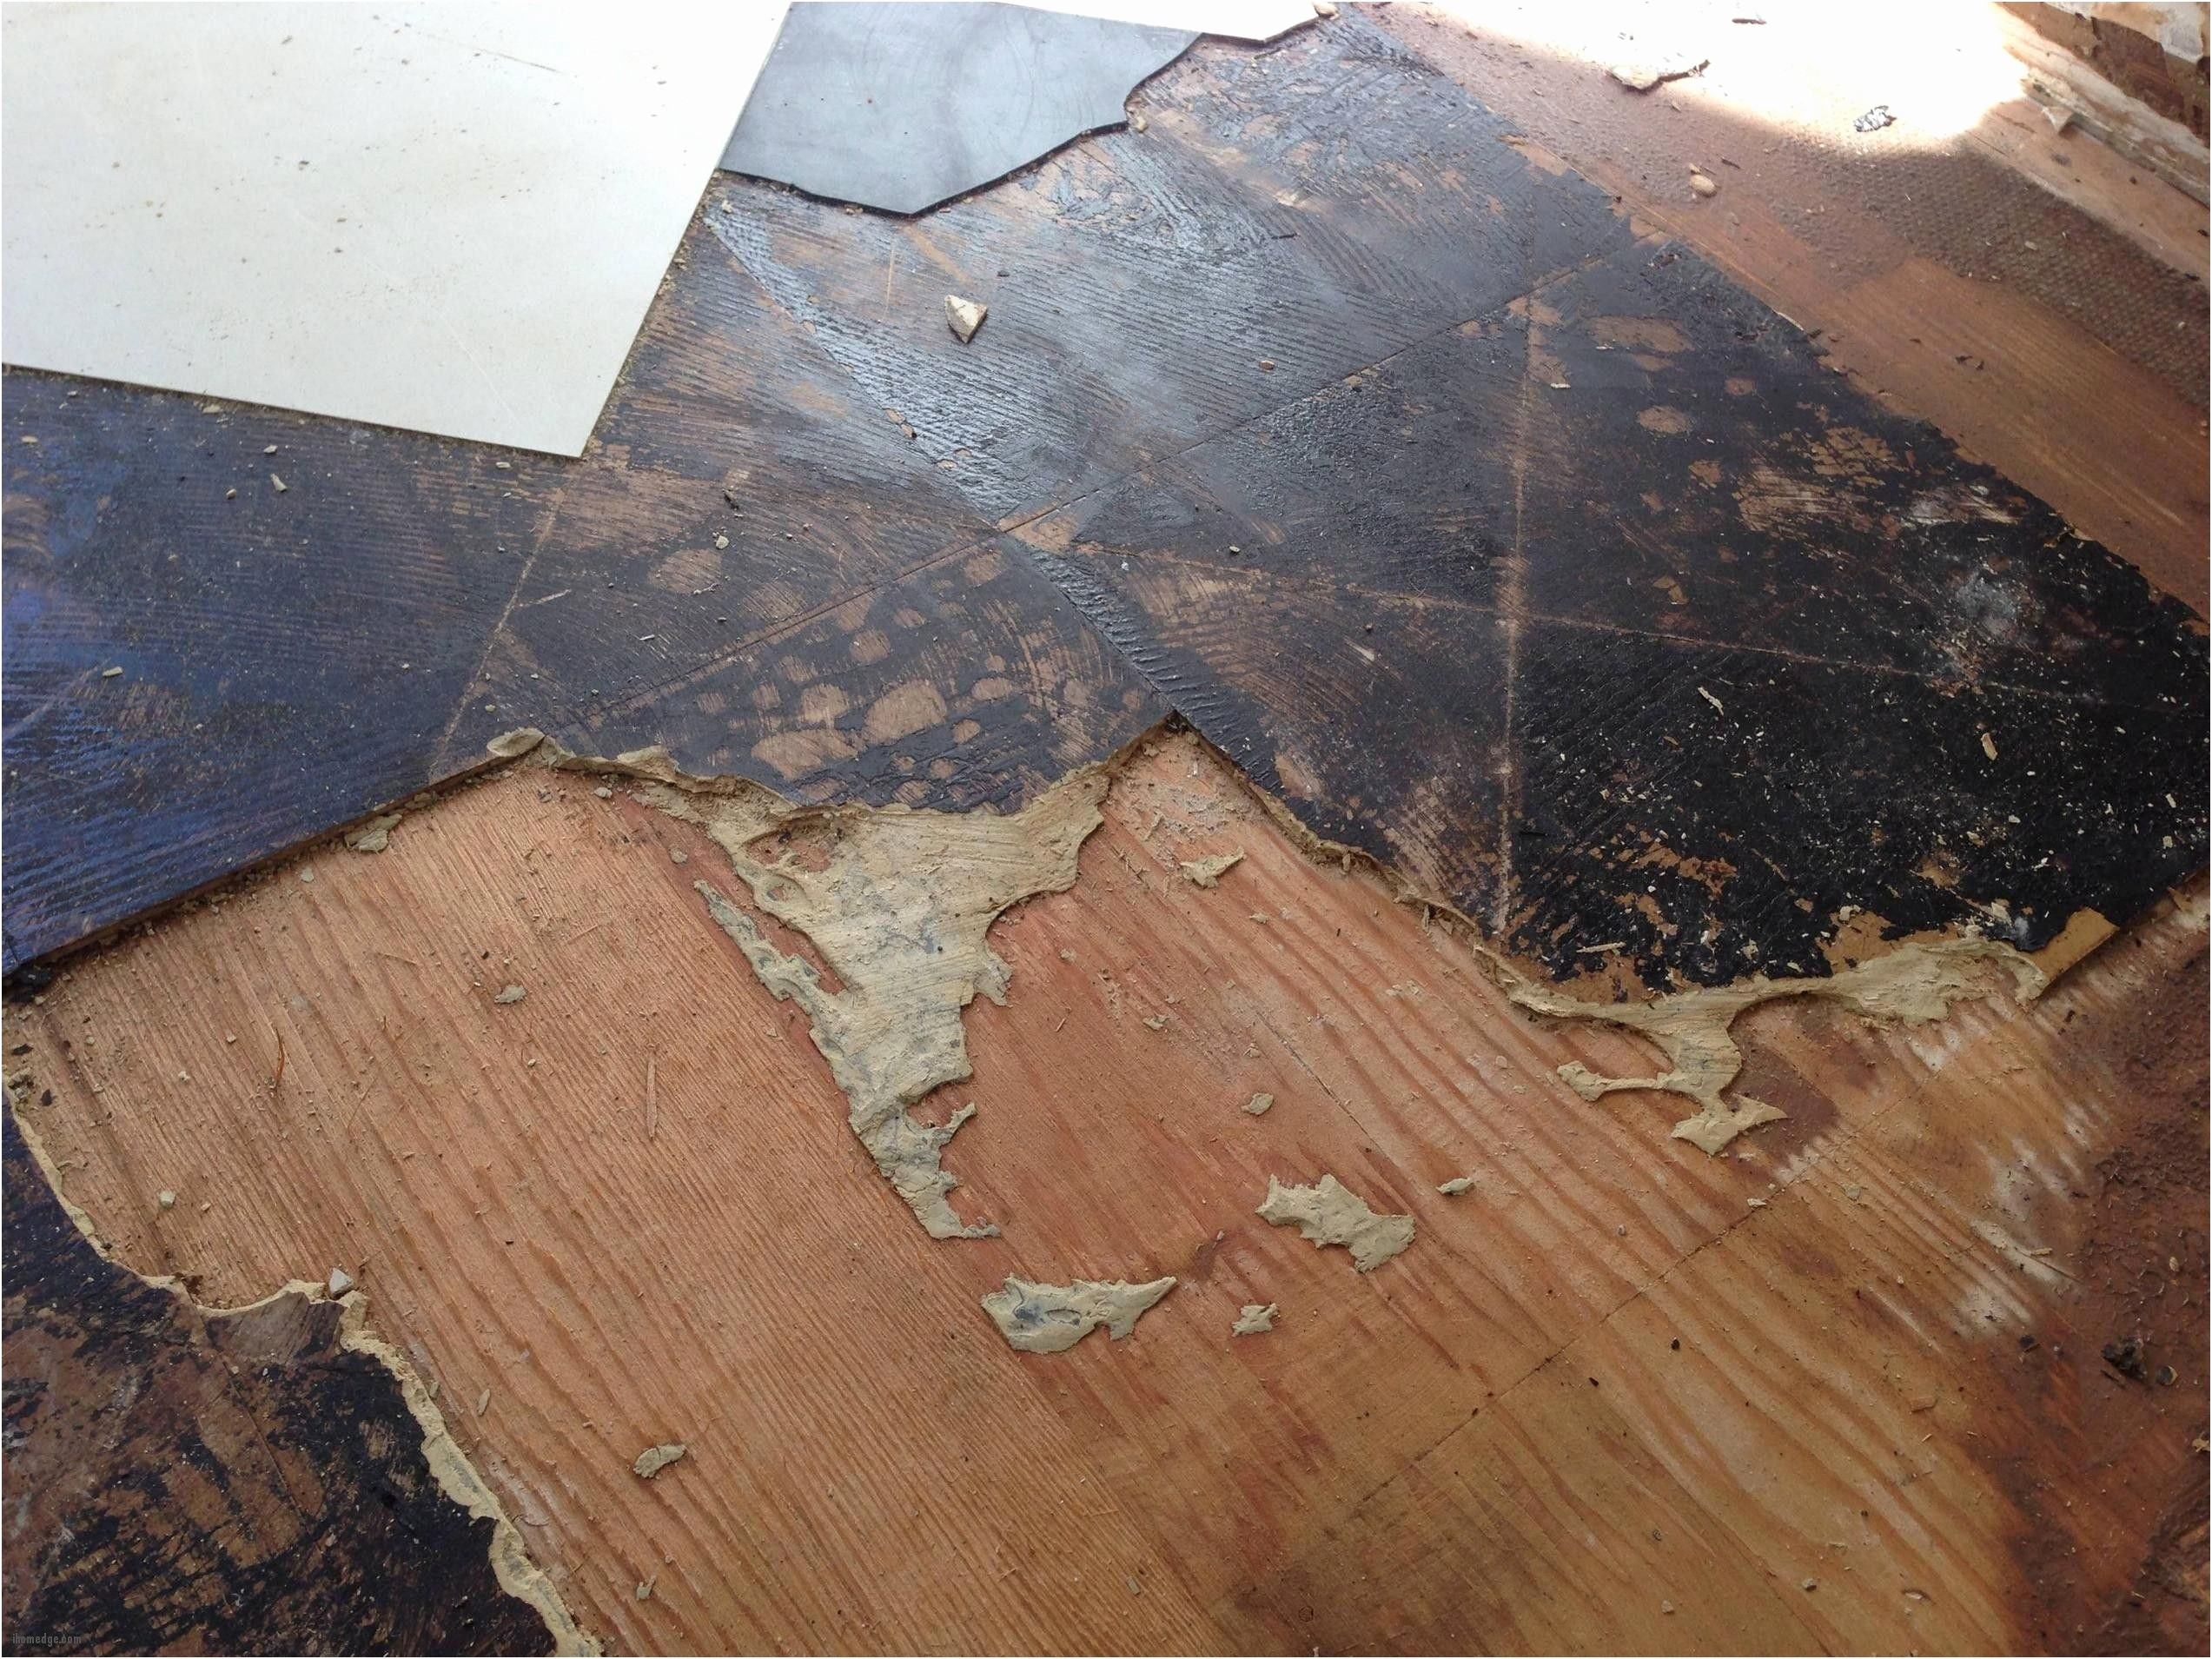 mirage red oak hardwood flooring of 19 awesome hardwood flooring for sale photograph dizpos com with hardwood flooring for sale fresh 50 new vinyl flooring sale pics 50 s image of 19